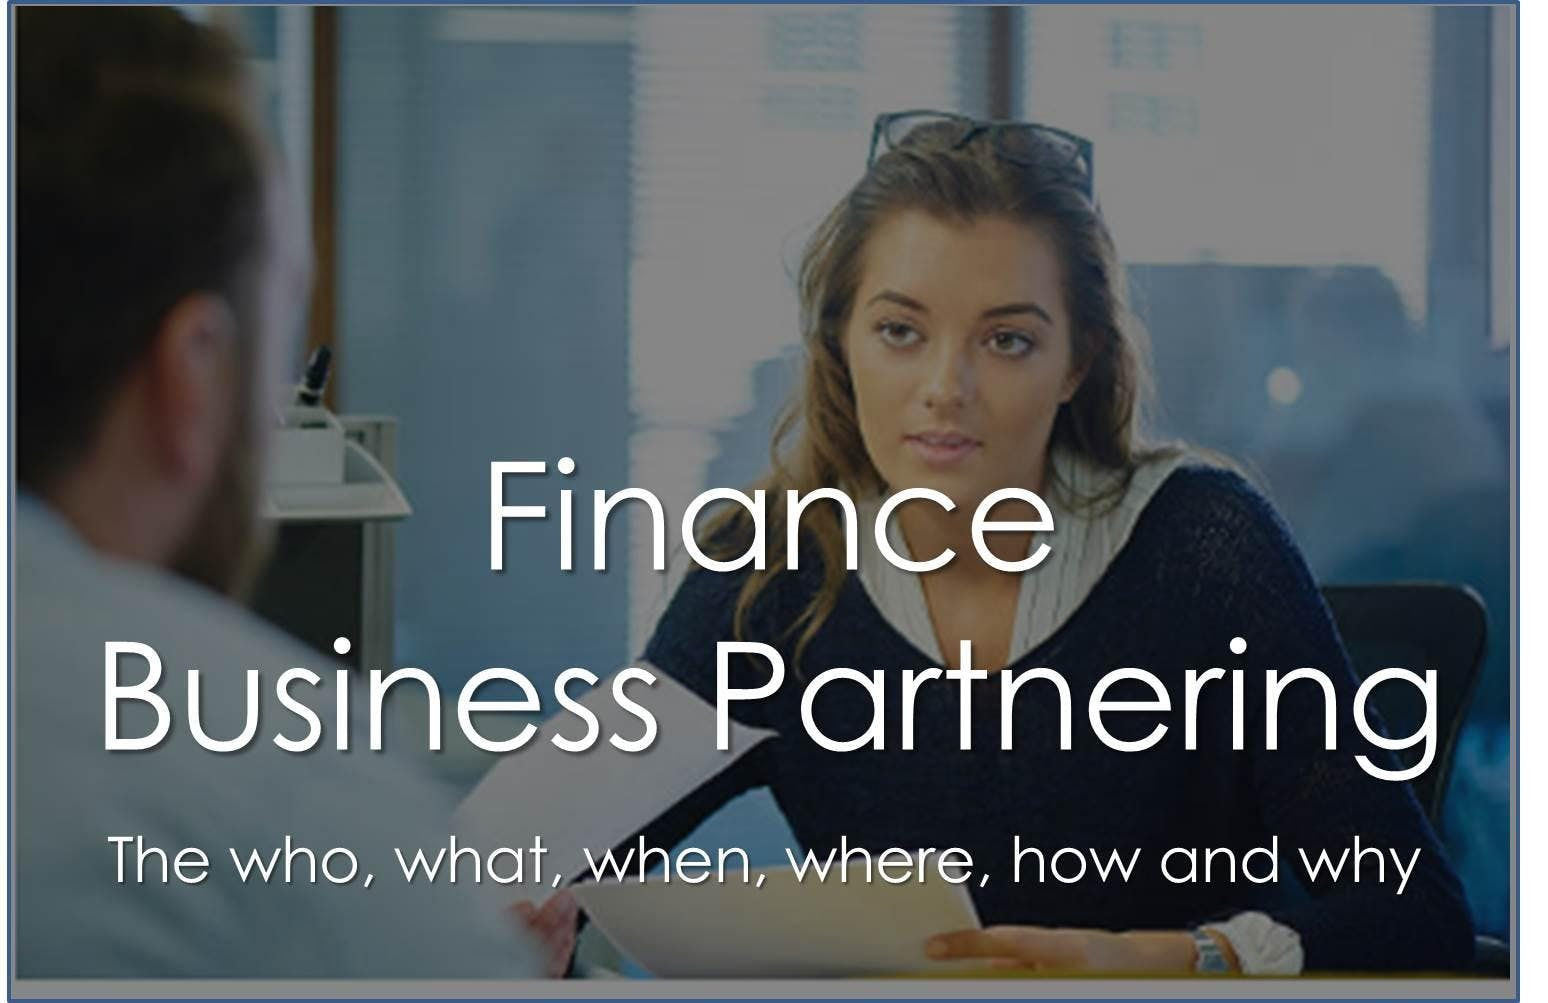 Finance Business Partnering